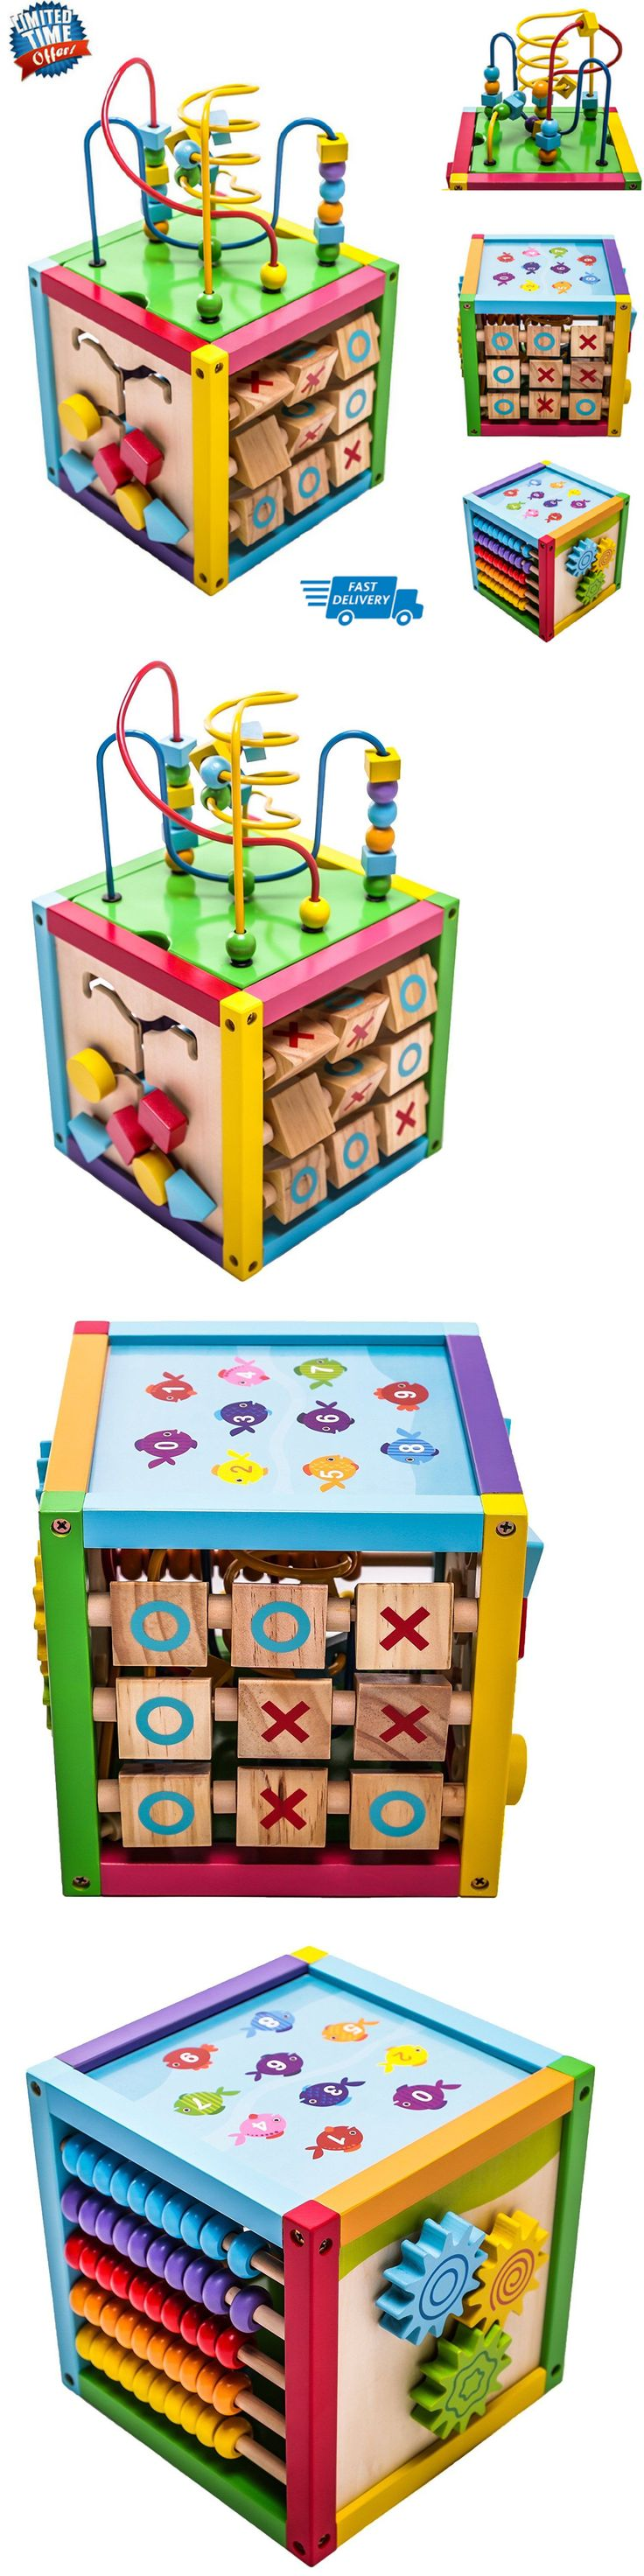 Developmental Baby Toys 100227: Play Cube Activity Center Colorful Wooden Learning Toy Kids Toddler Gift 6 In 1 -> BUY IT NOW ONLY: $41.66 on eBay!